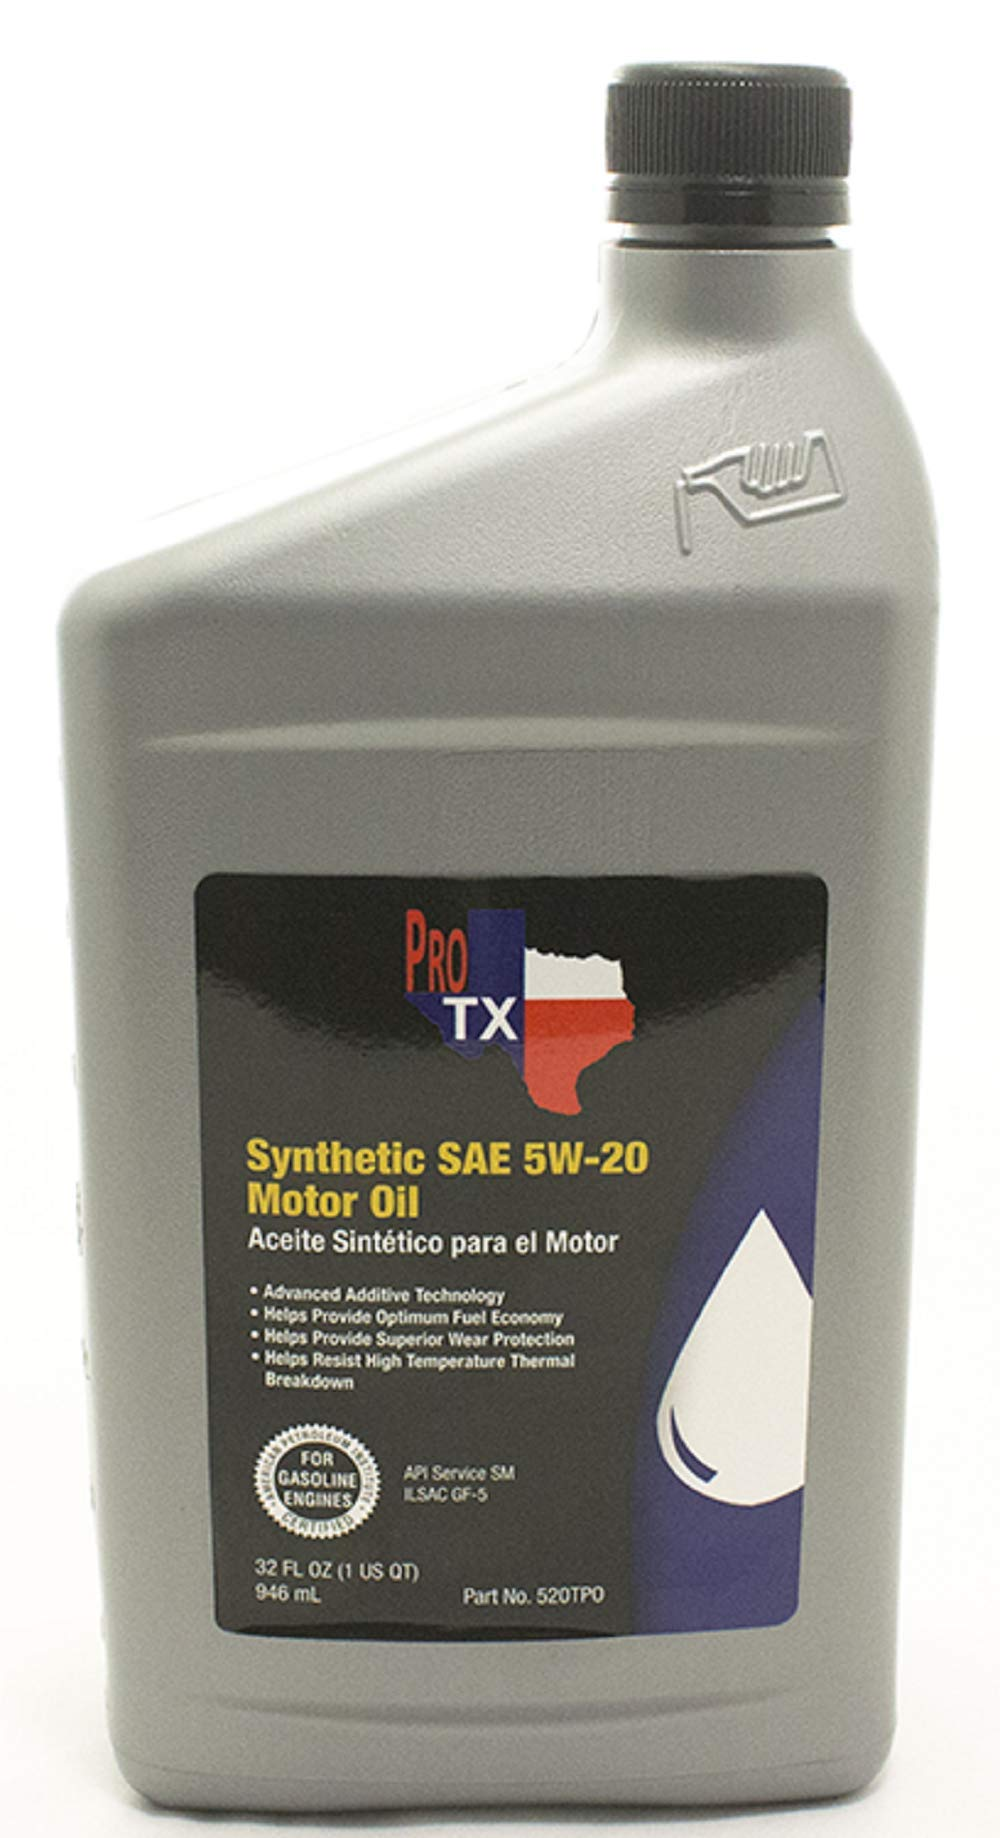 Texas Performance Oil Advance Additive Technology SAE 5W-20 Full Synthetic Motor Oil 32 Fl OZ.(1 US QT)